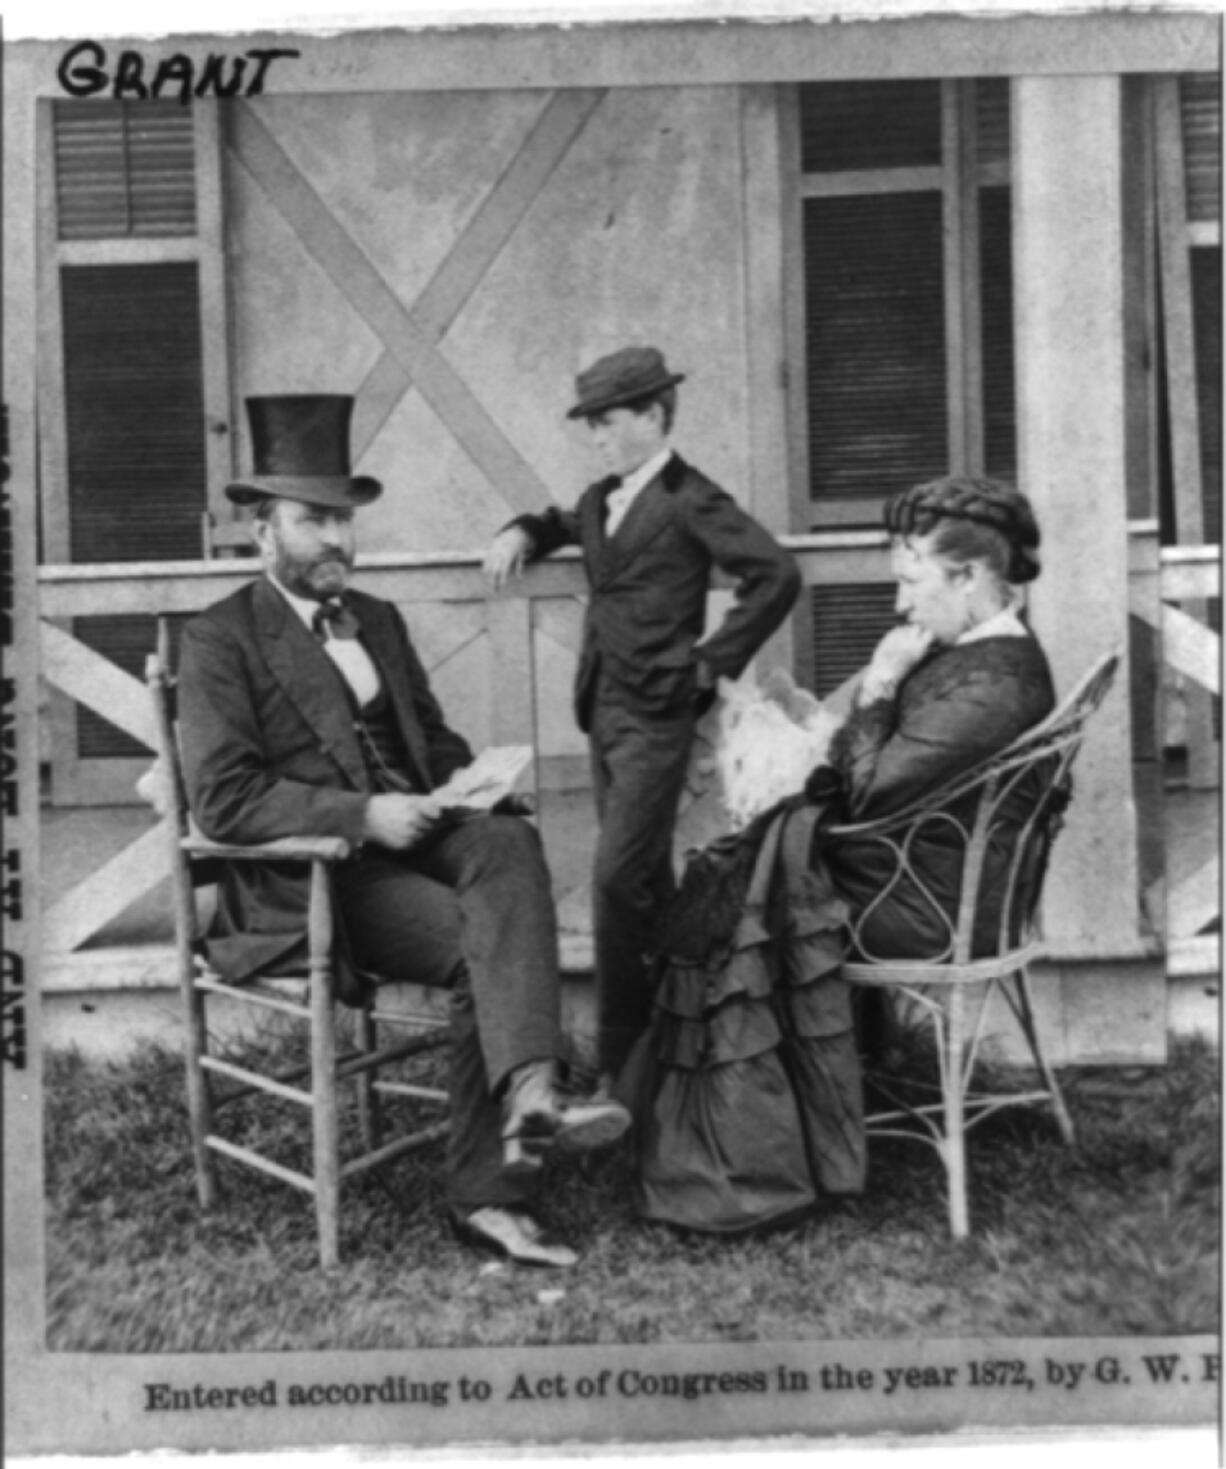 President Ulysses S. Grant on vacation in Long Branch, N.J., about 1873 with his family. He's seated on a porch with his wife, Julia, and son, Jesse. When he arrived in Vancouver six years later, he appeared paunchier, but he and his wife would likely have been dressed the same.